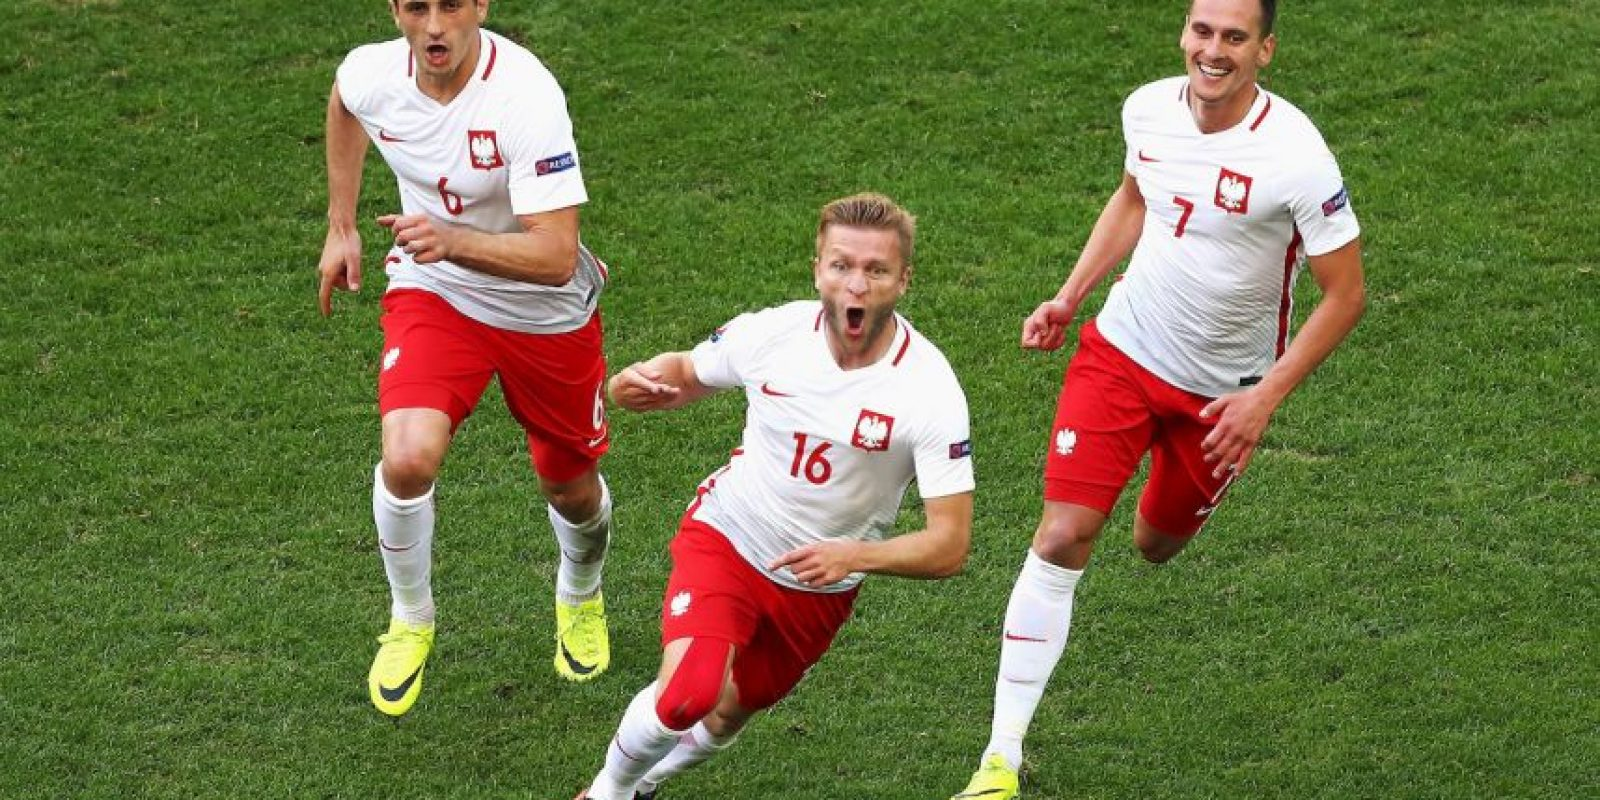 Polonia Foto:Getty Images